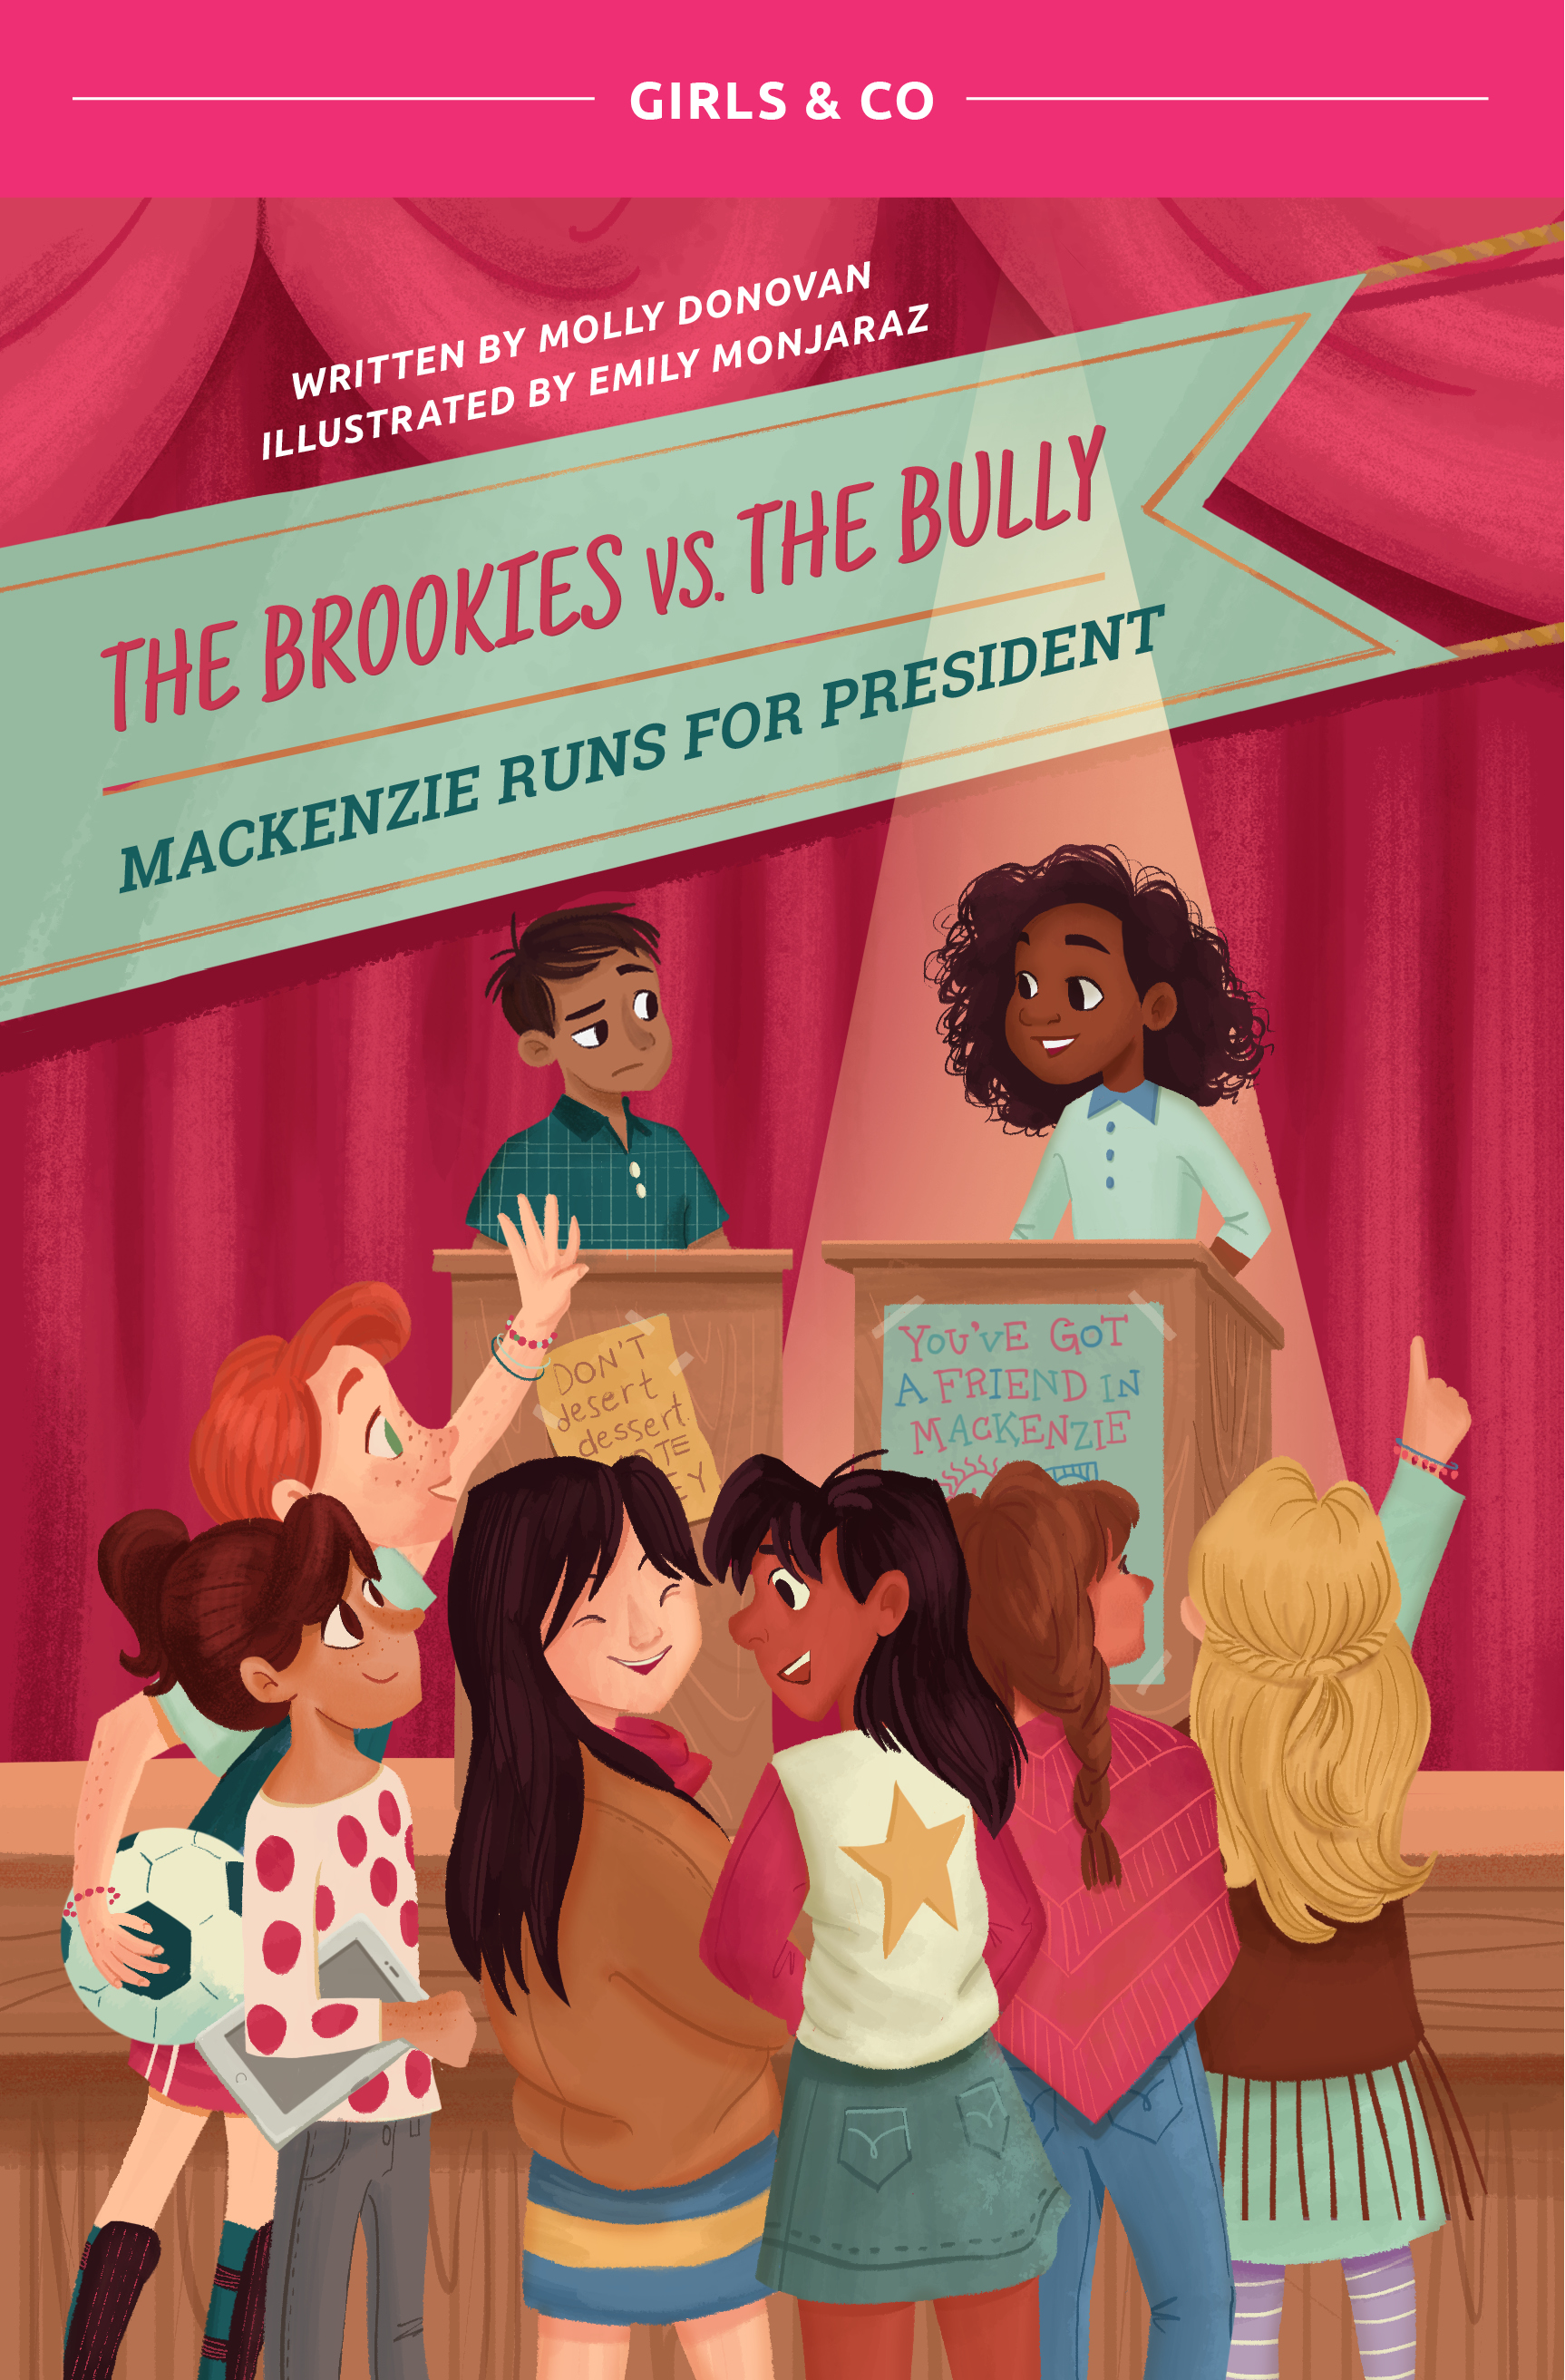 Book 2: Mackenzie's Story - Mackenzie Hill is running for President of her fifth grade class. Not only is she the most qualified and passionate candidate, she's running on a platform that she believes can truly bring positive change to Willowbrook Elementary. While she has the support of the Brookies, she will need to face off against Joey, the class bully, who is lying to get the vote of his classmates.